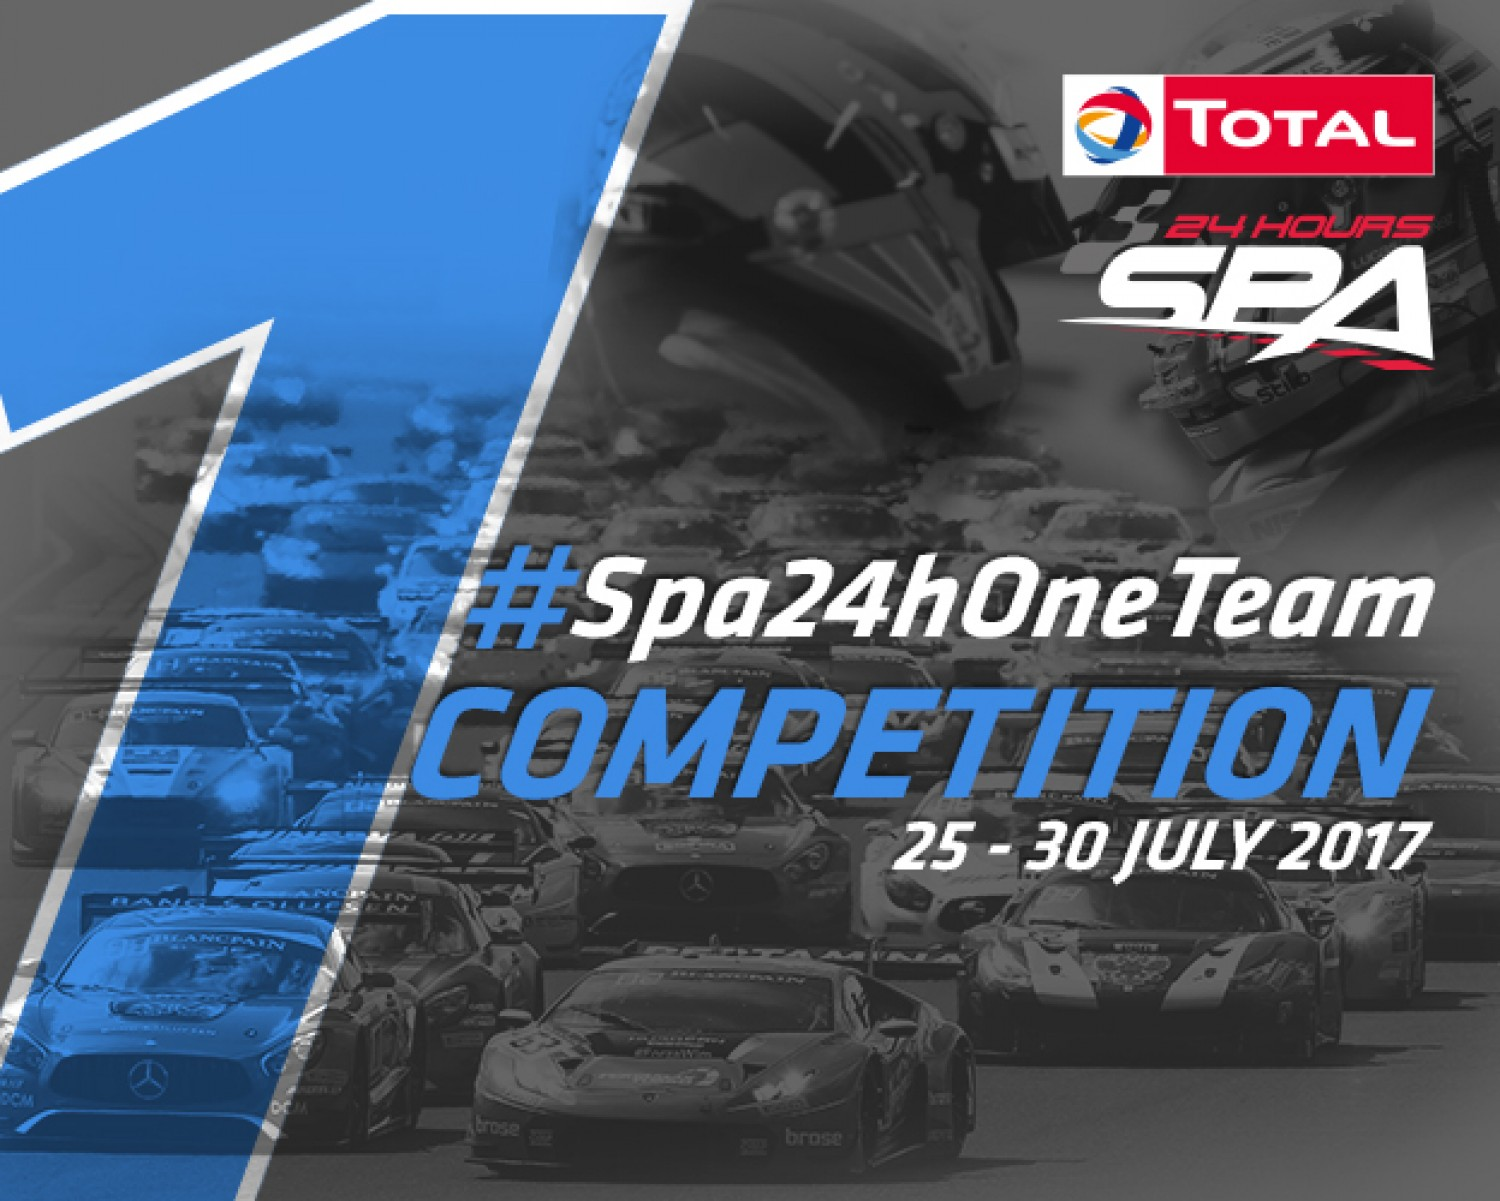 Total 24 Hours of Spa teams compete in Team Spirit Competition